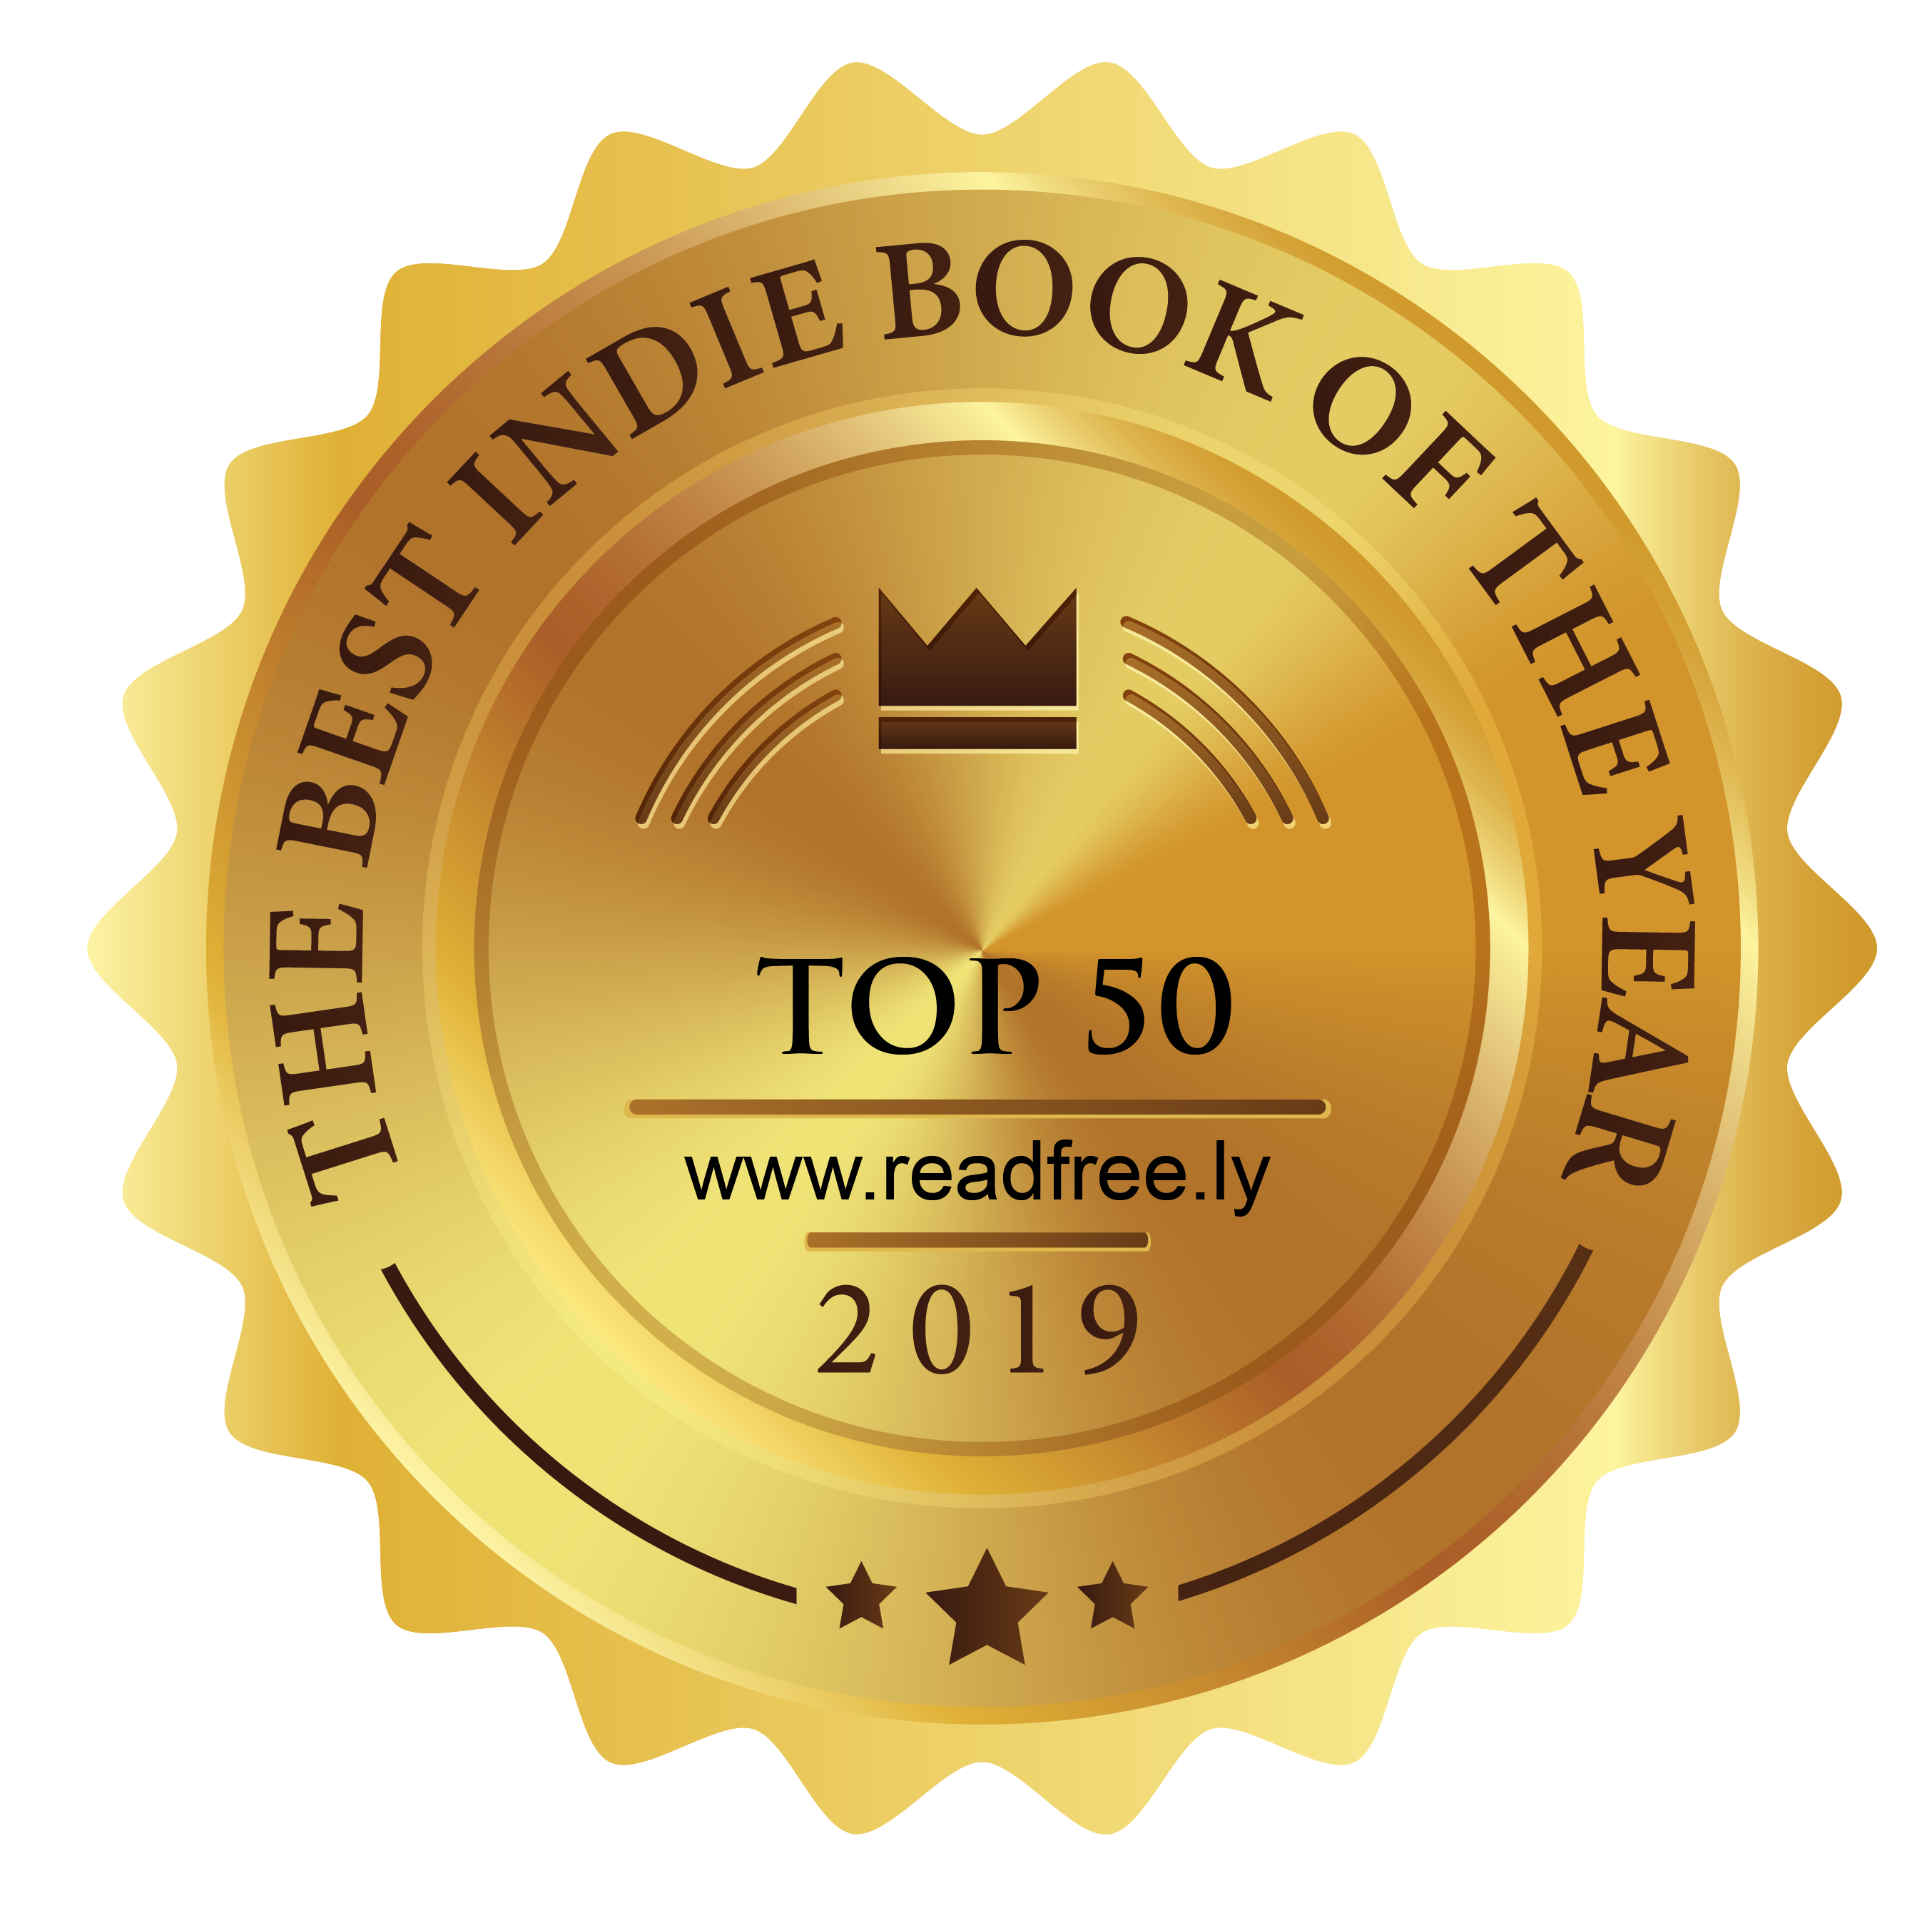 ReadFREE.ly's Top 50 Indie Books of 2019 - Third Place